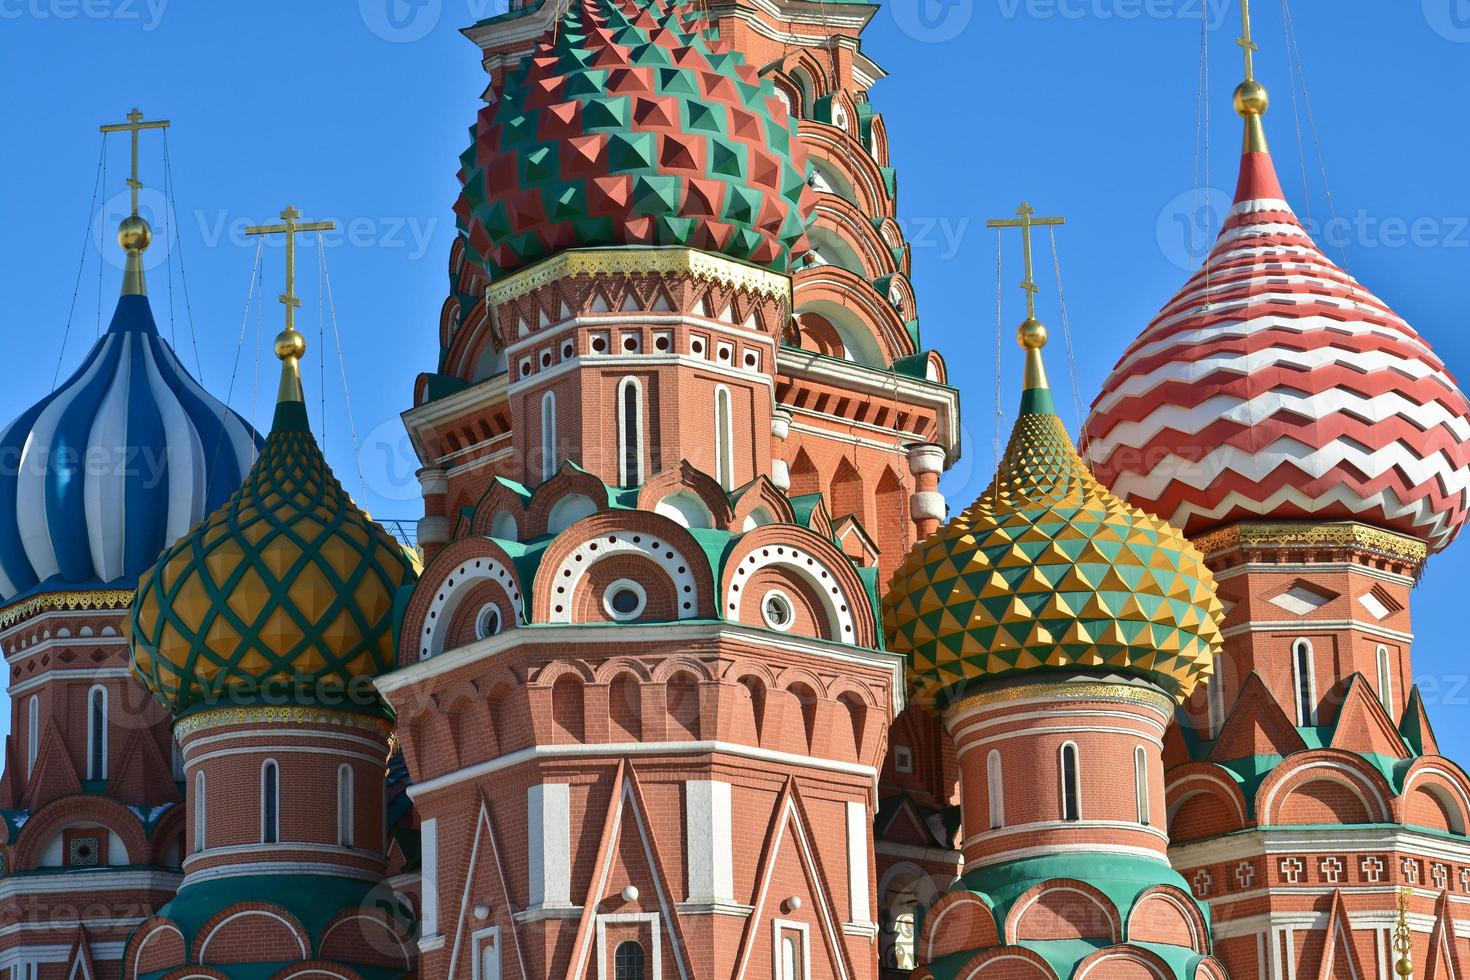 Domes of St. Basil's Cathedral on red square. photo